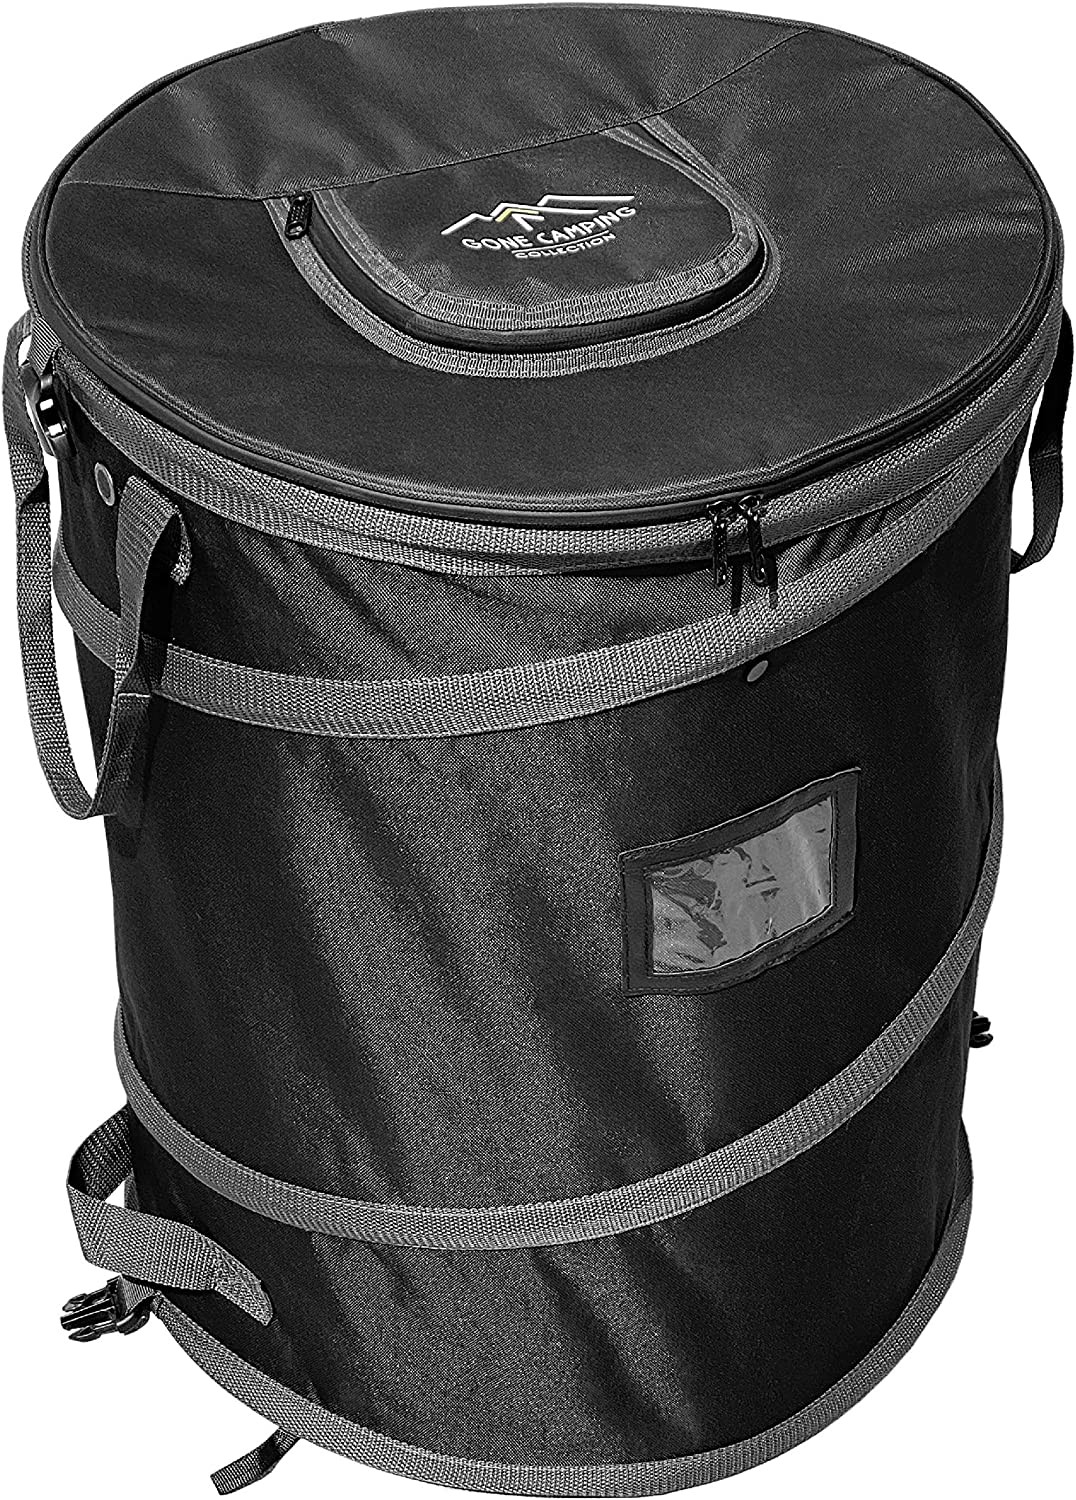 Trailersphere Collapsible Bin Trash & Recycle/Utility, Gone Camping Collection, Perfect for Camping, Laundry, Storage and Garden, Waterproof and Tear Resistance, Trash and/or Recycle